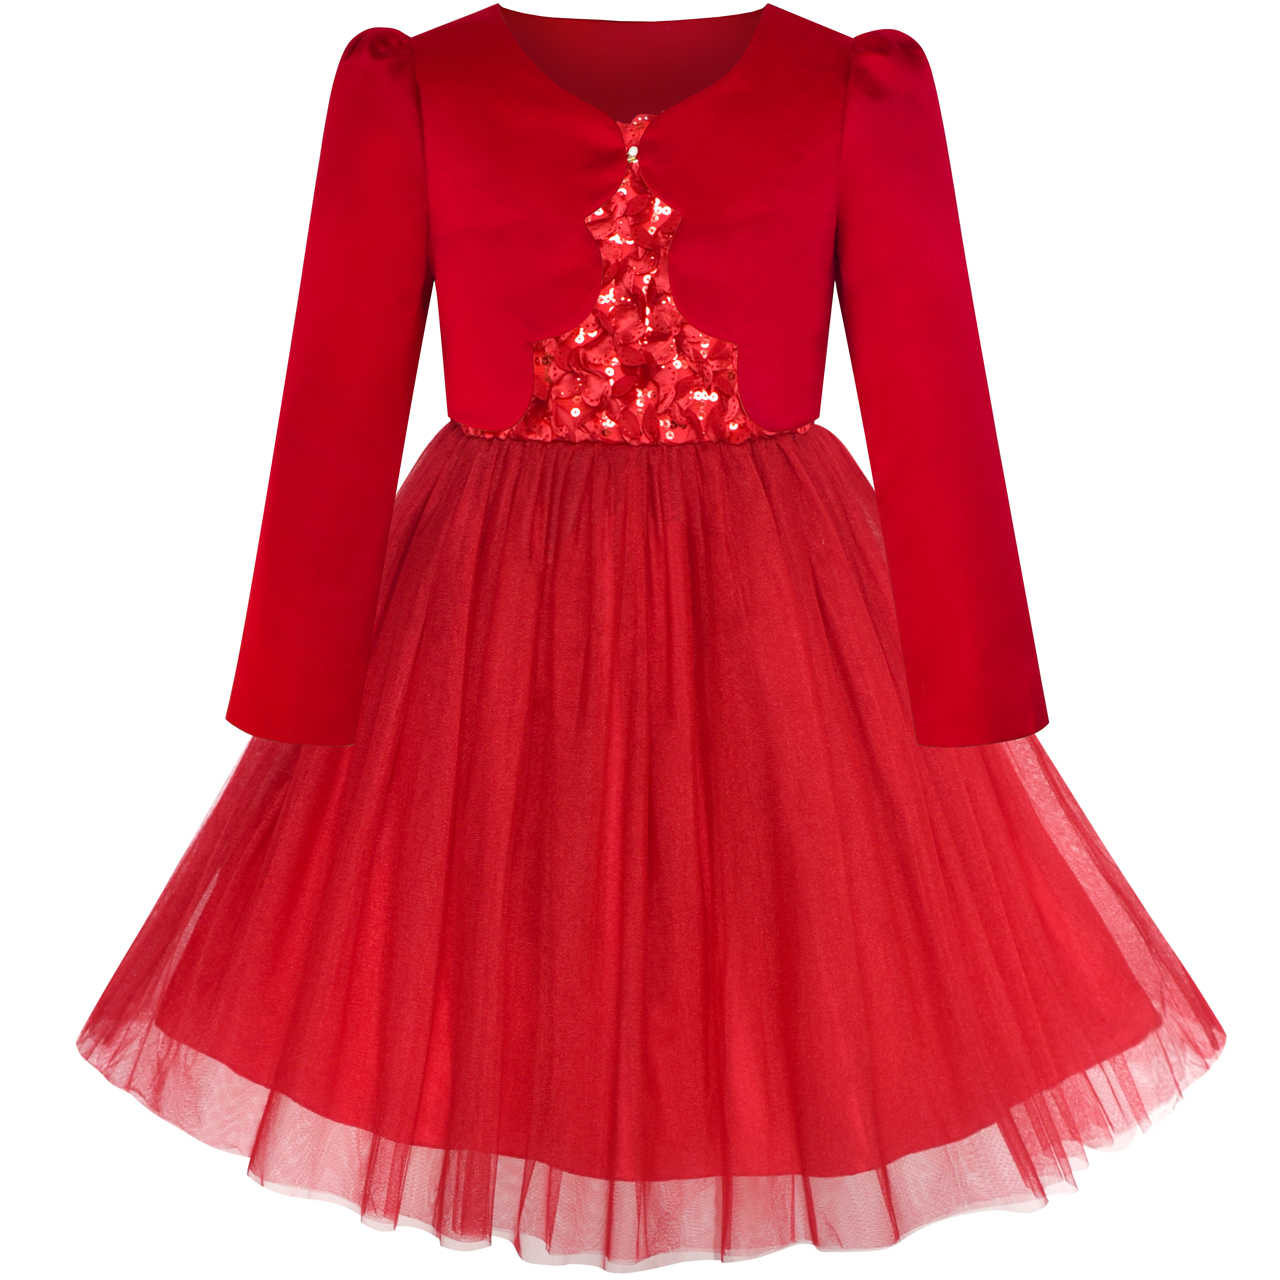 6411cb6f85 Flower Girls Dress Red Long Sleeve Shrug Bolero 2019 Summer Princess  Wedding Party Dresses Girl Clothes